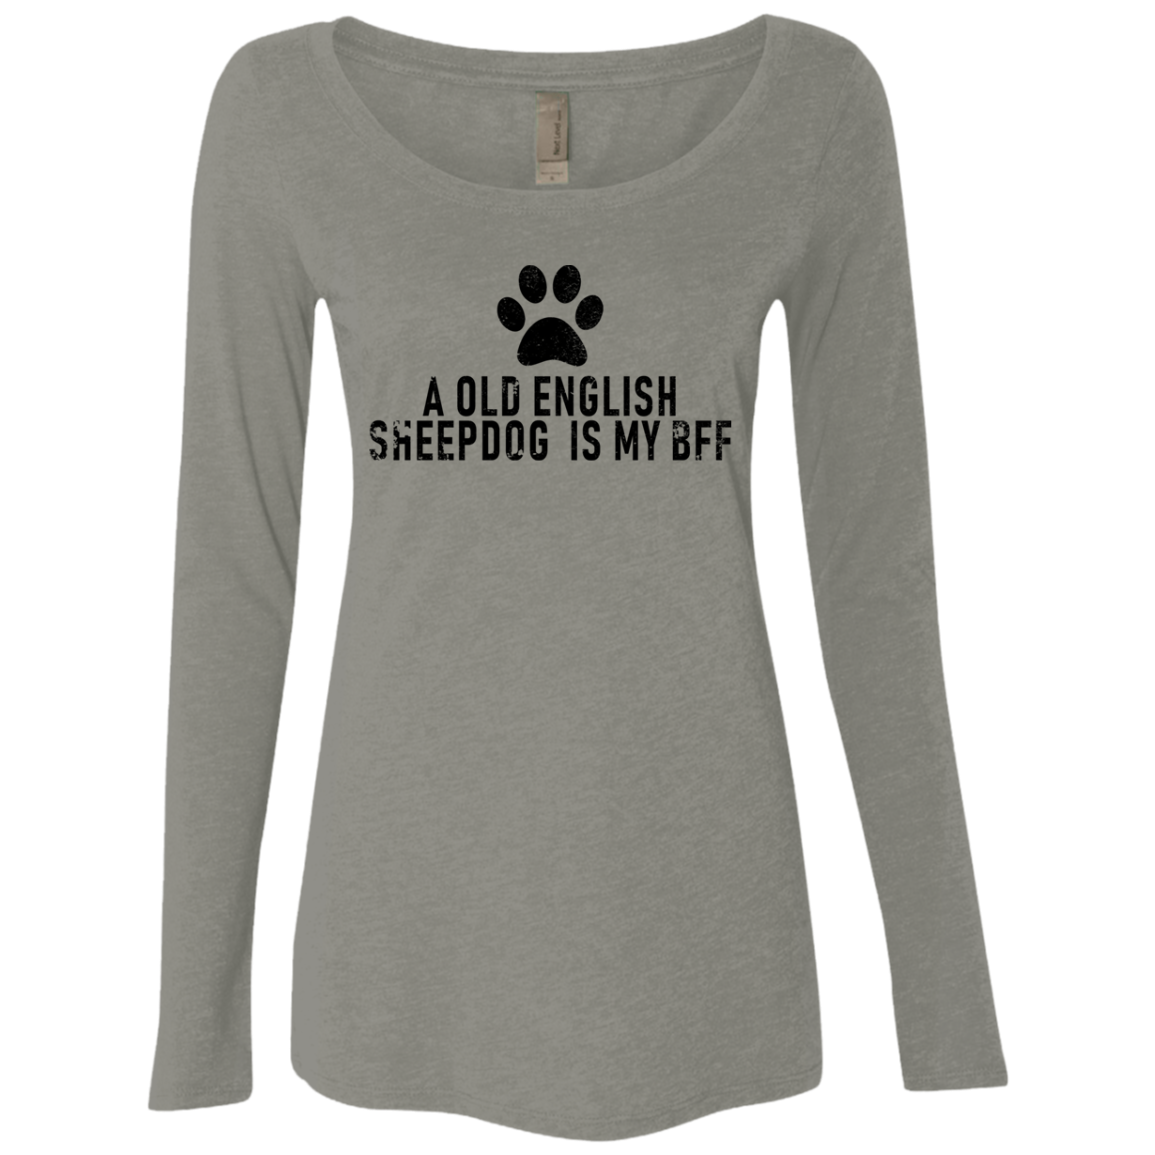 A Old English Sheepdog Is My Bff Women's Long Sleeve Tee